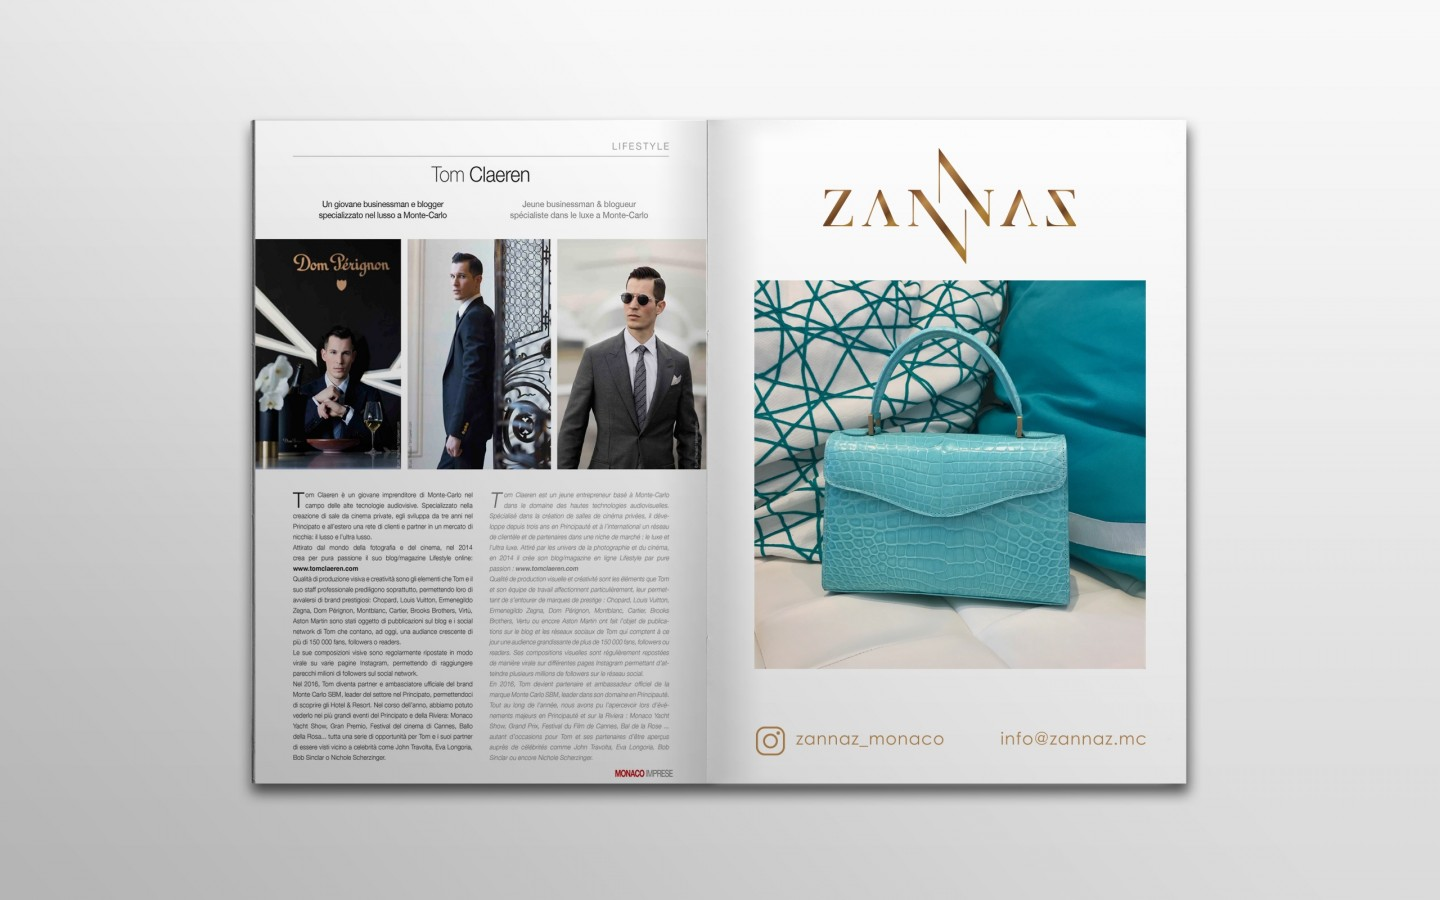 ZANNAZ Branding Project by Crevisio